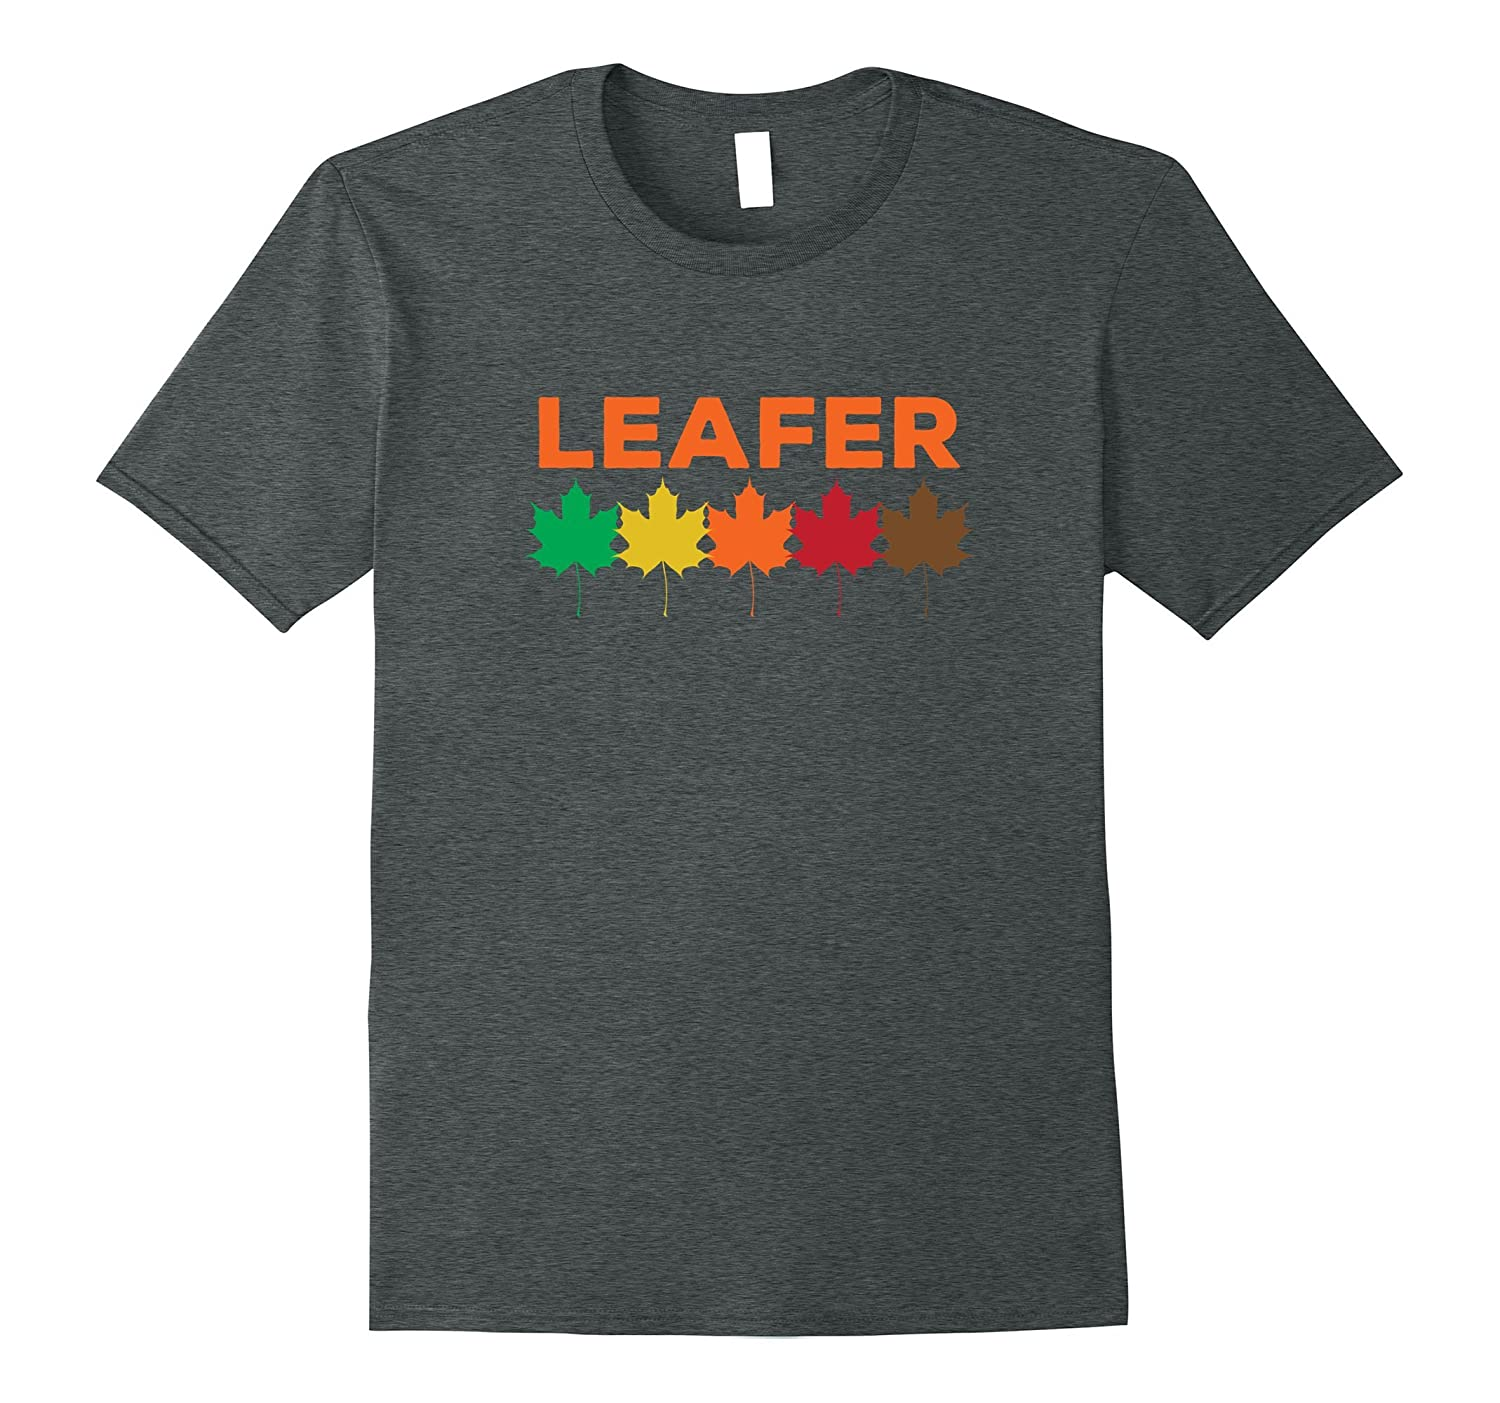 Leafer T-Shirt Shirt Tee - Fall Autumn Leaves Color Tour-FL